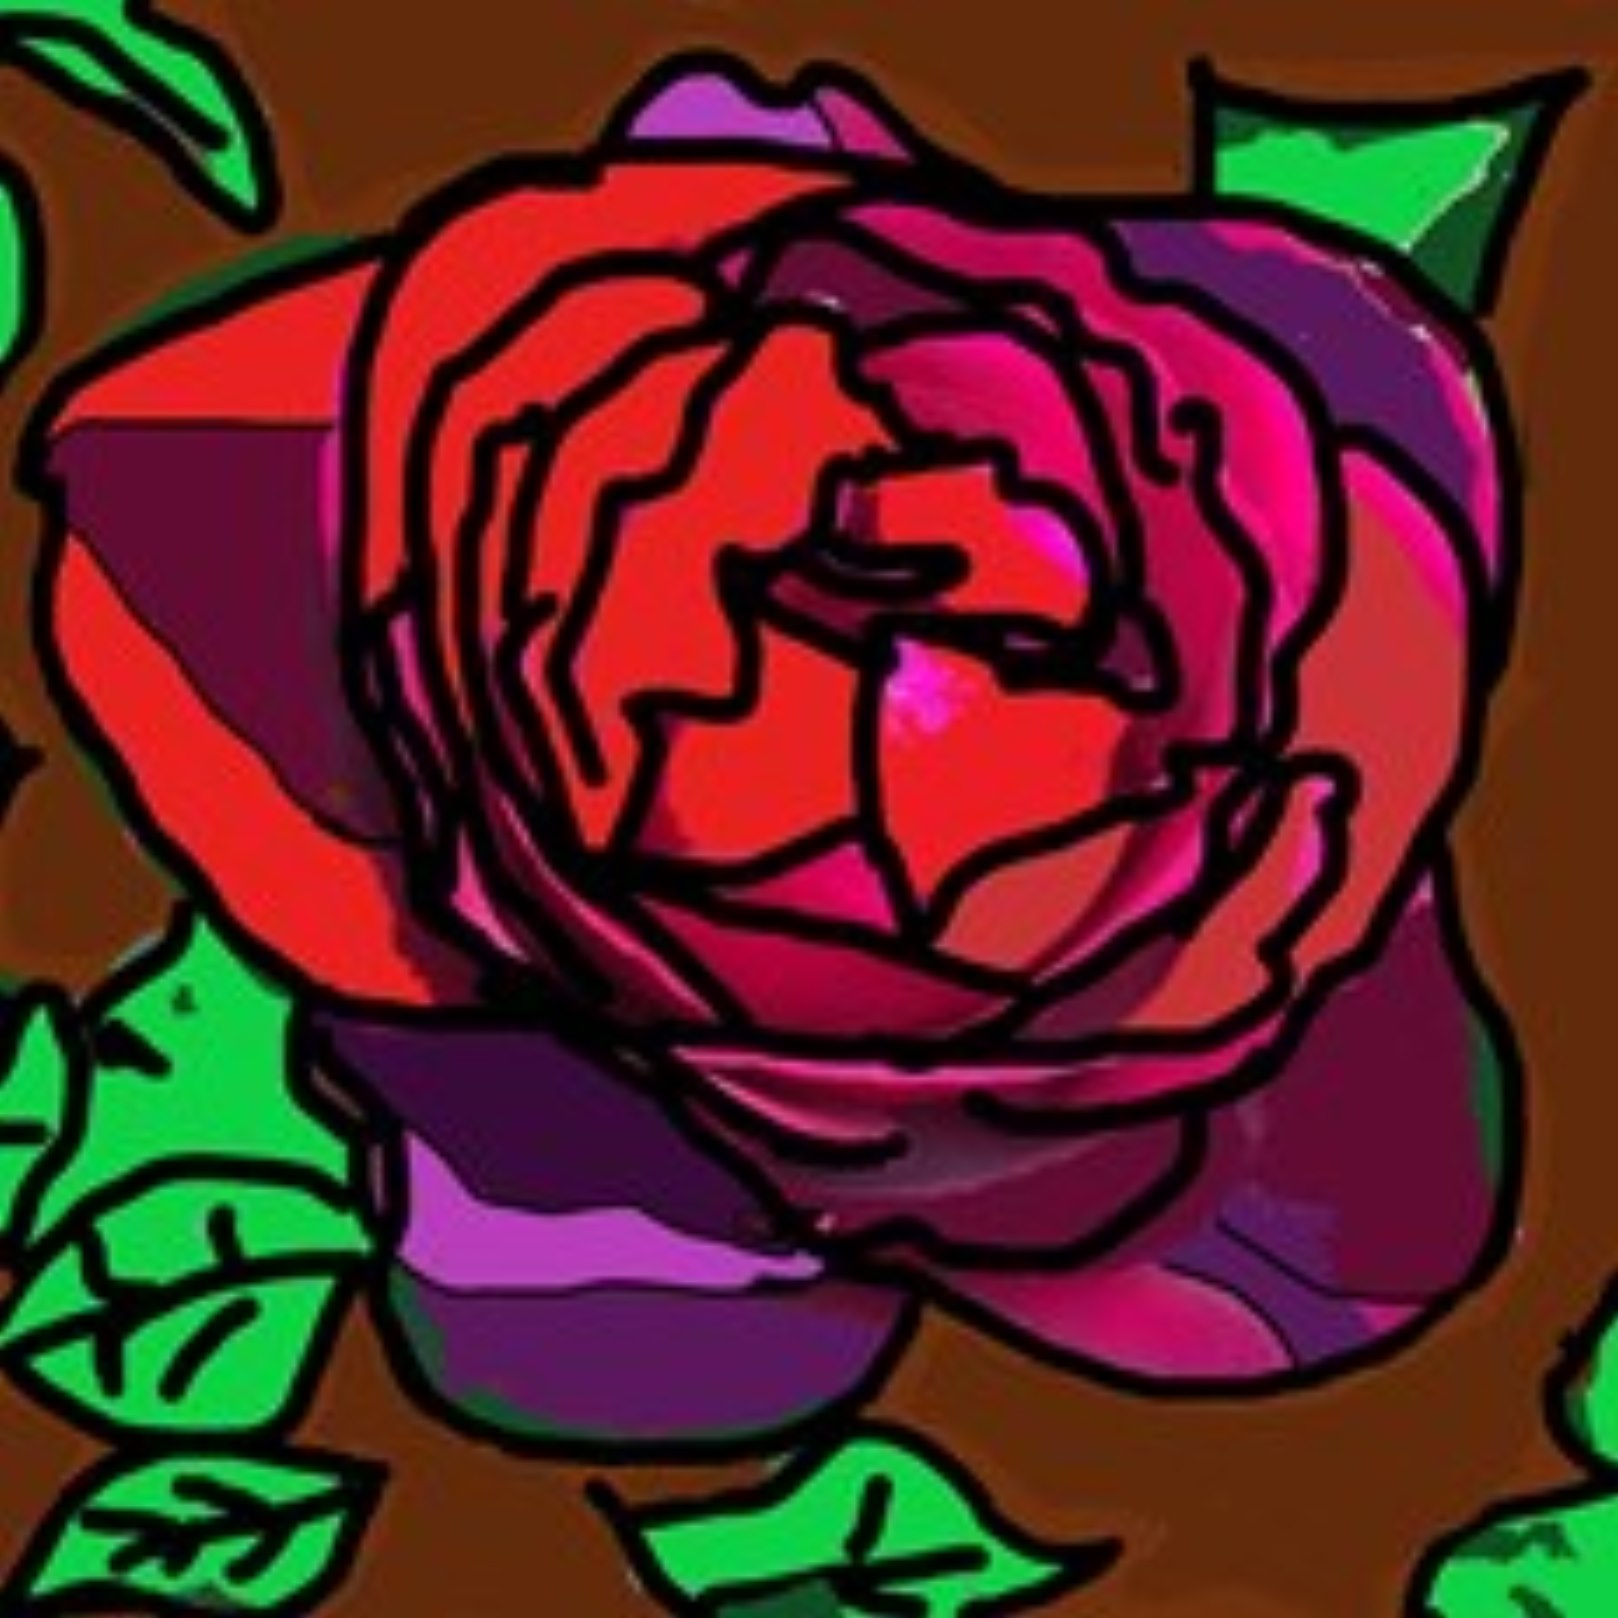 abstract image of a rose